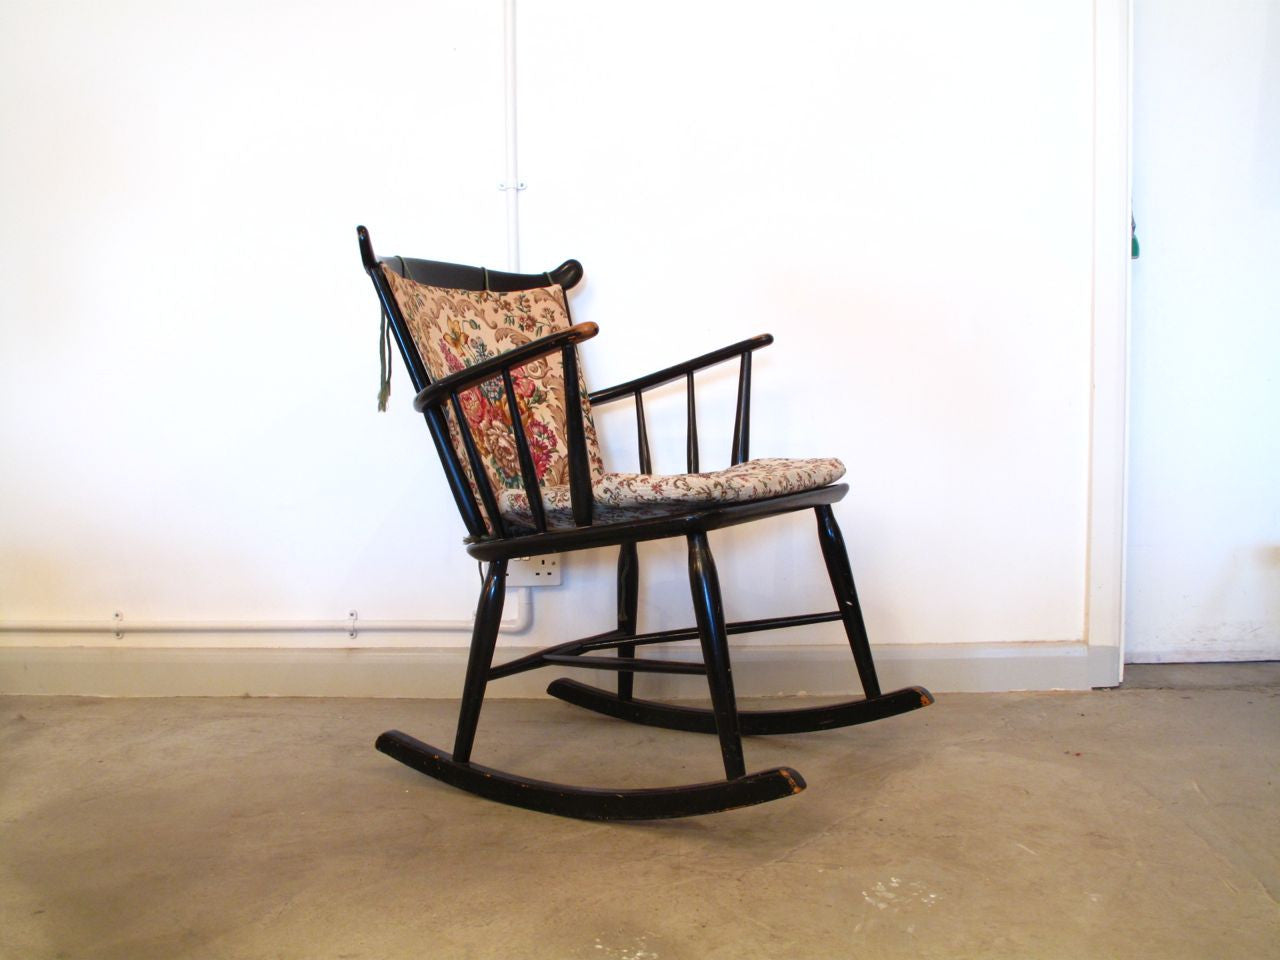 Beech rocking chair no. 1